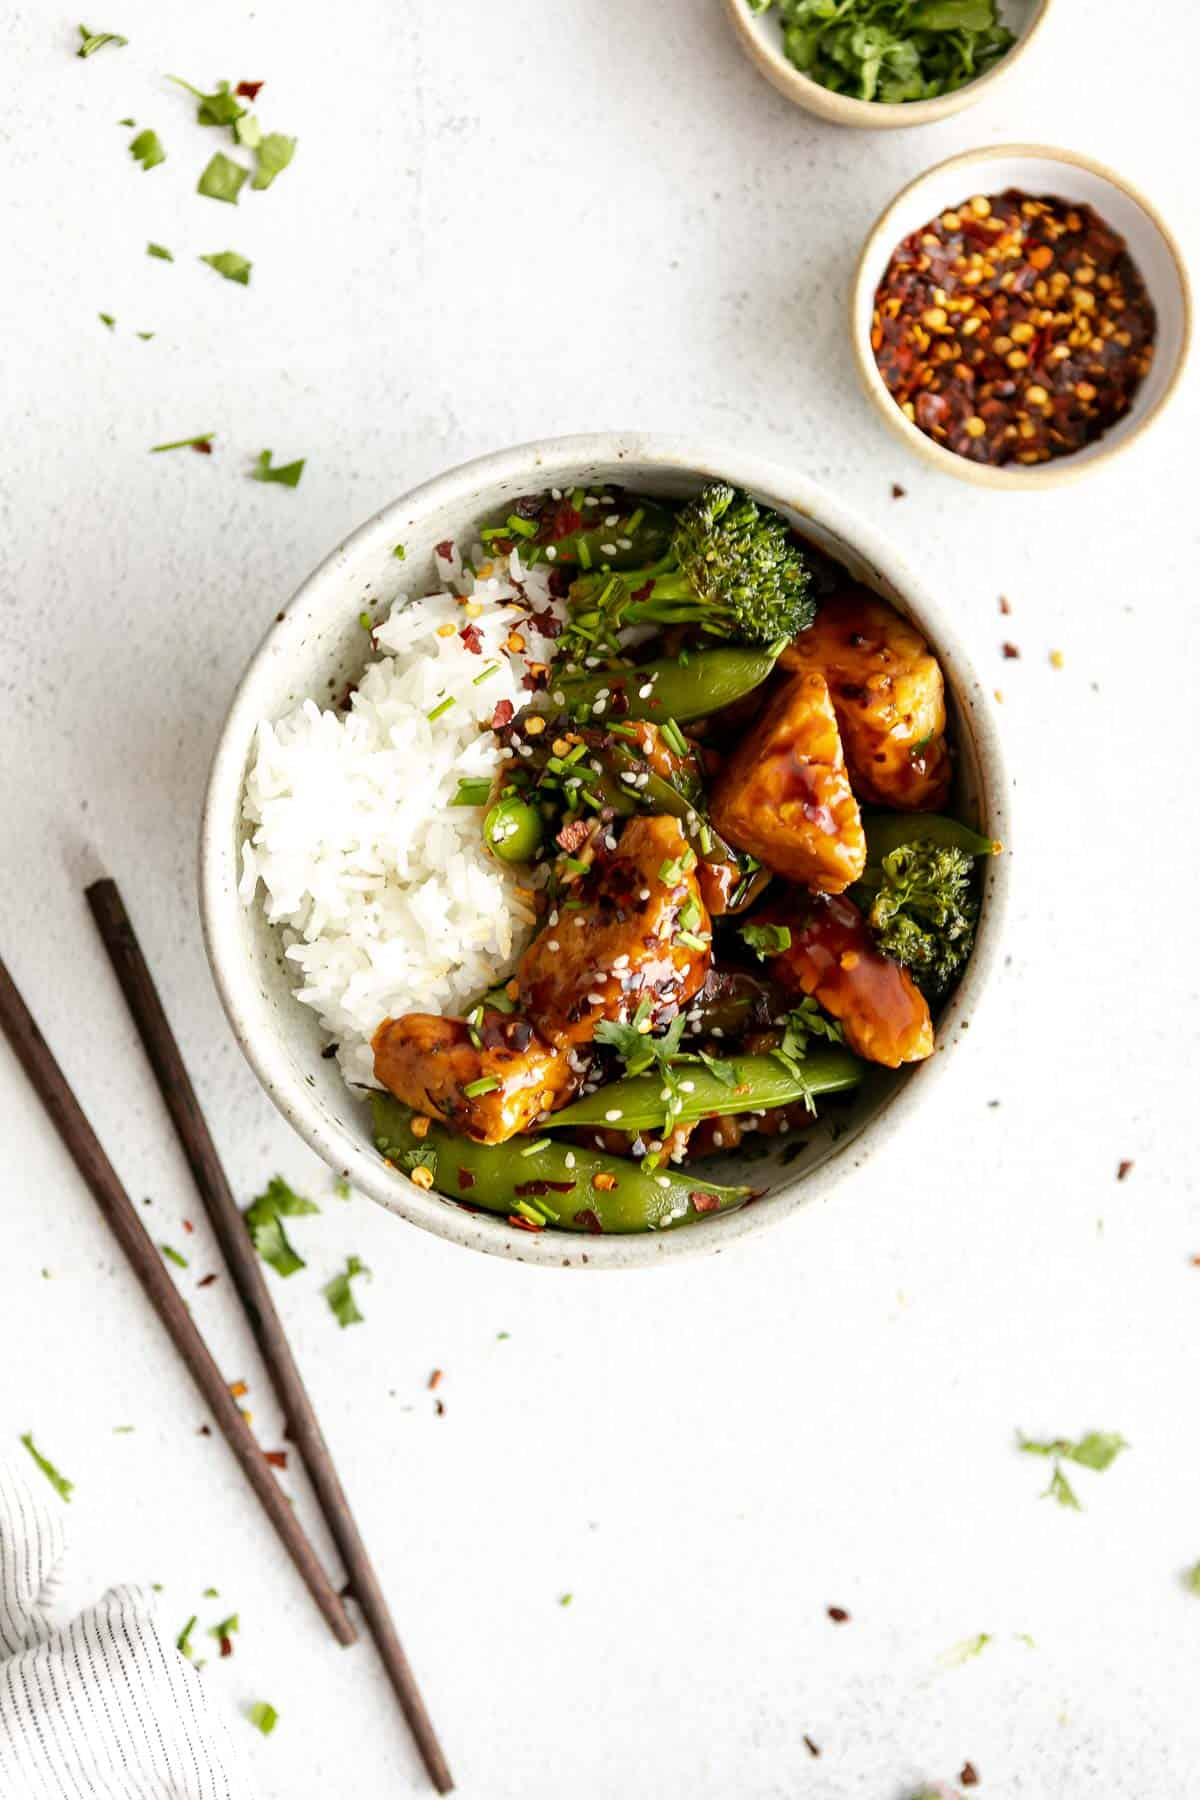 tempeh stir fry with broccoli and rice in a bowl